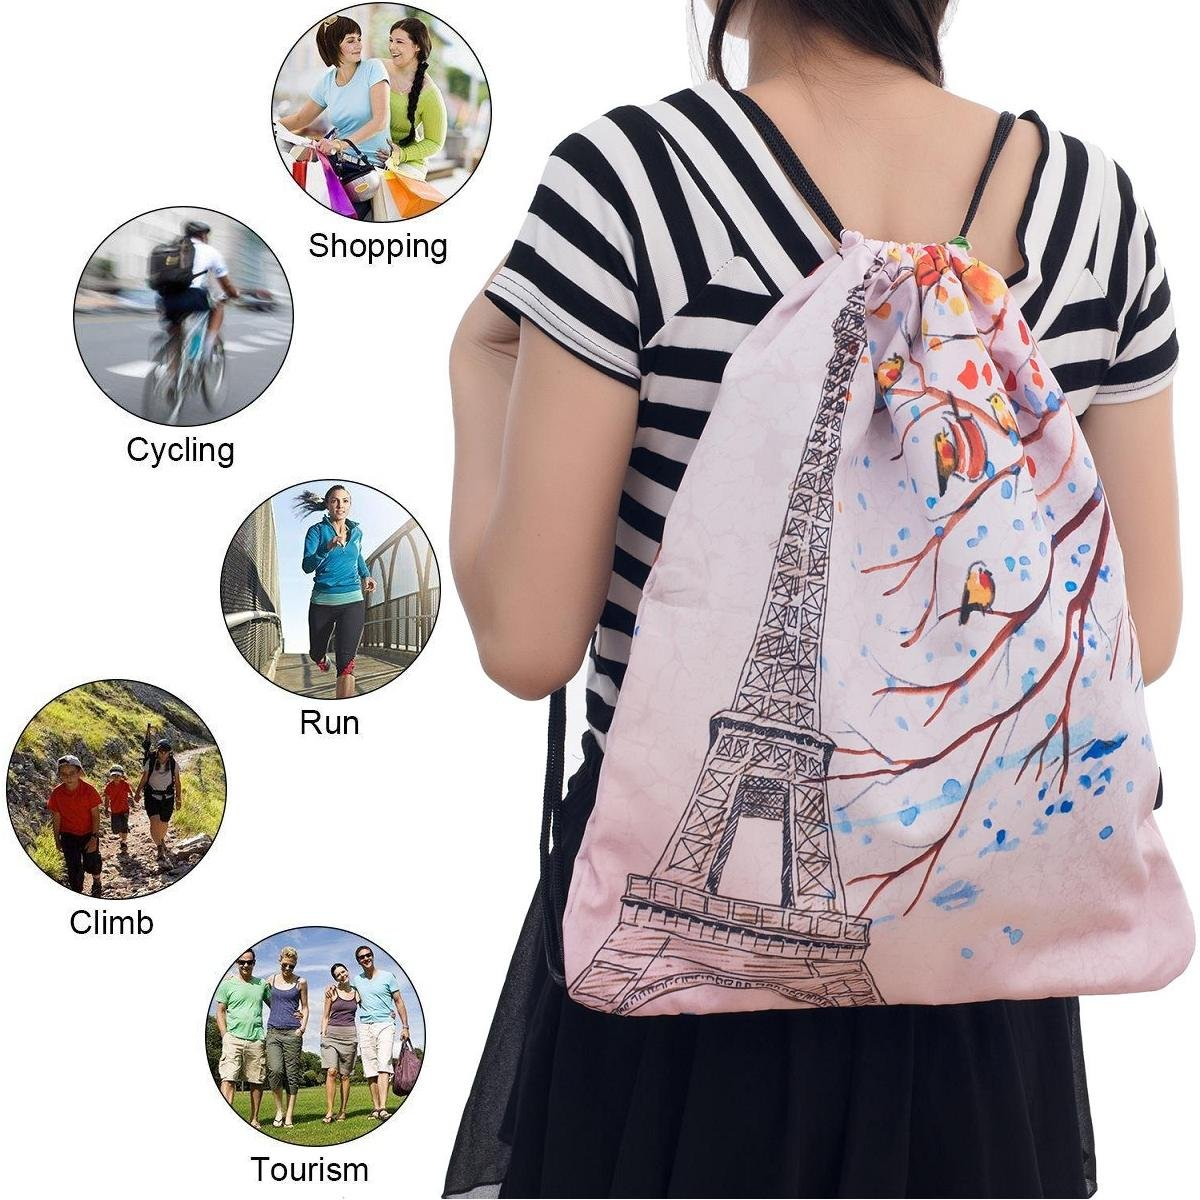 iColor Sport Sackpack,Drawstring Backpack,Stylish Multipurpose Girls Nylon Gym Bags,Teen Yoga Dance Bag,Lightweight Gym Bag for Women Cycling Hiking,Gymsack Travel Daypack 18'' x 13.8'' (Eiffel Tower) by iColor (Image #6)